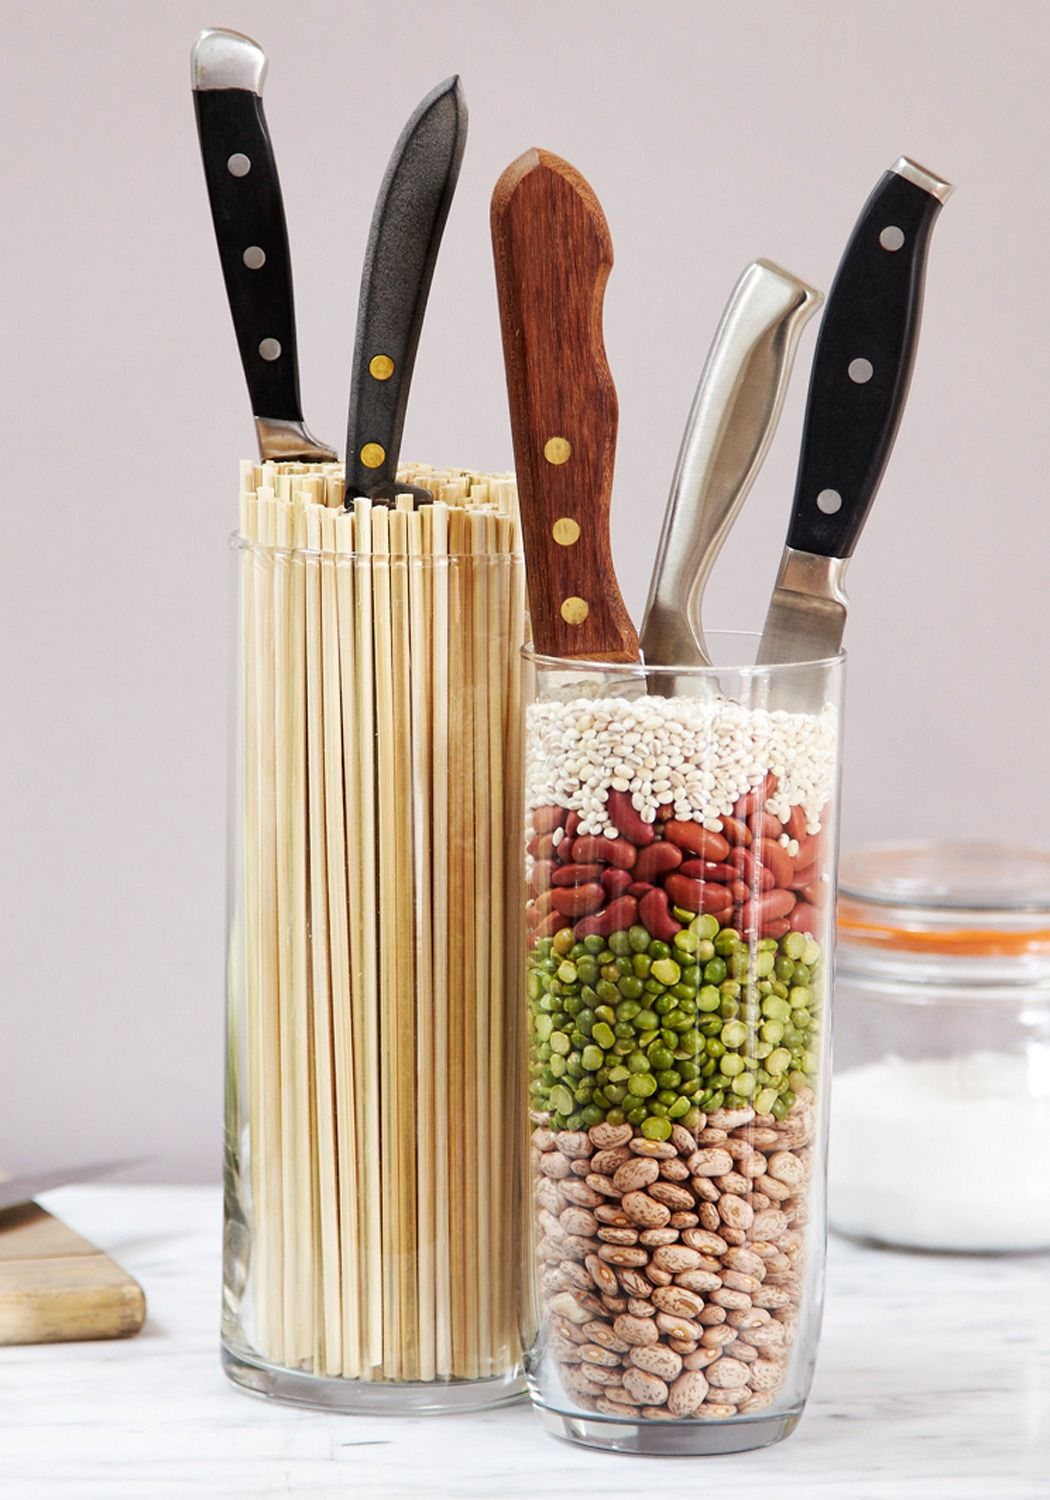 Check Out These 3 Diy Knife Blocks For Your Kitchen Quick Weekend